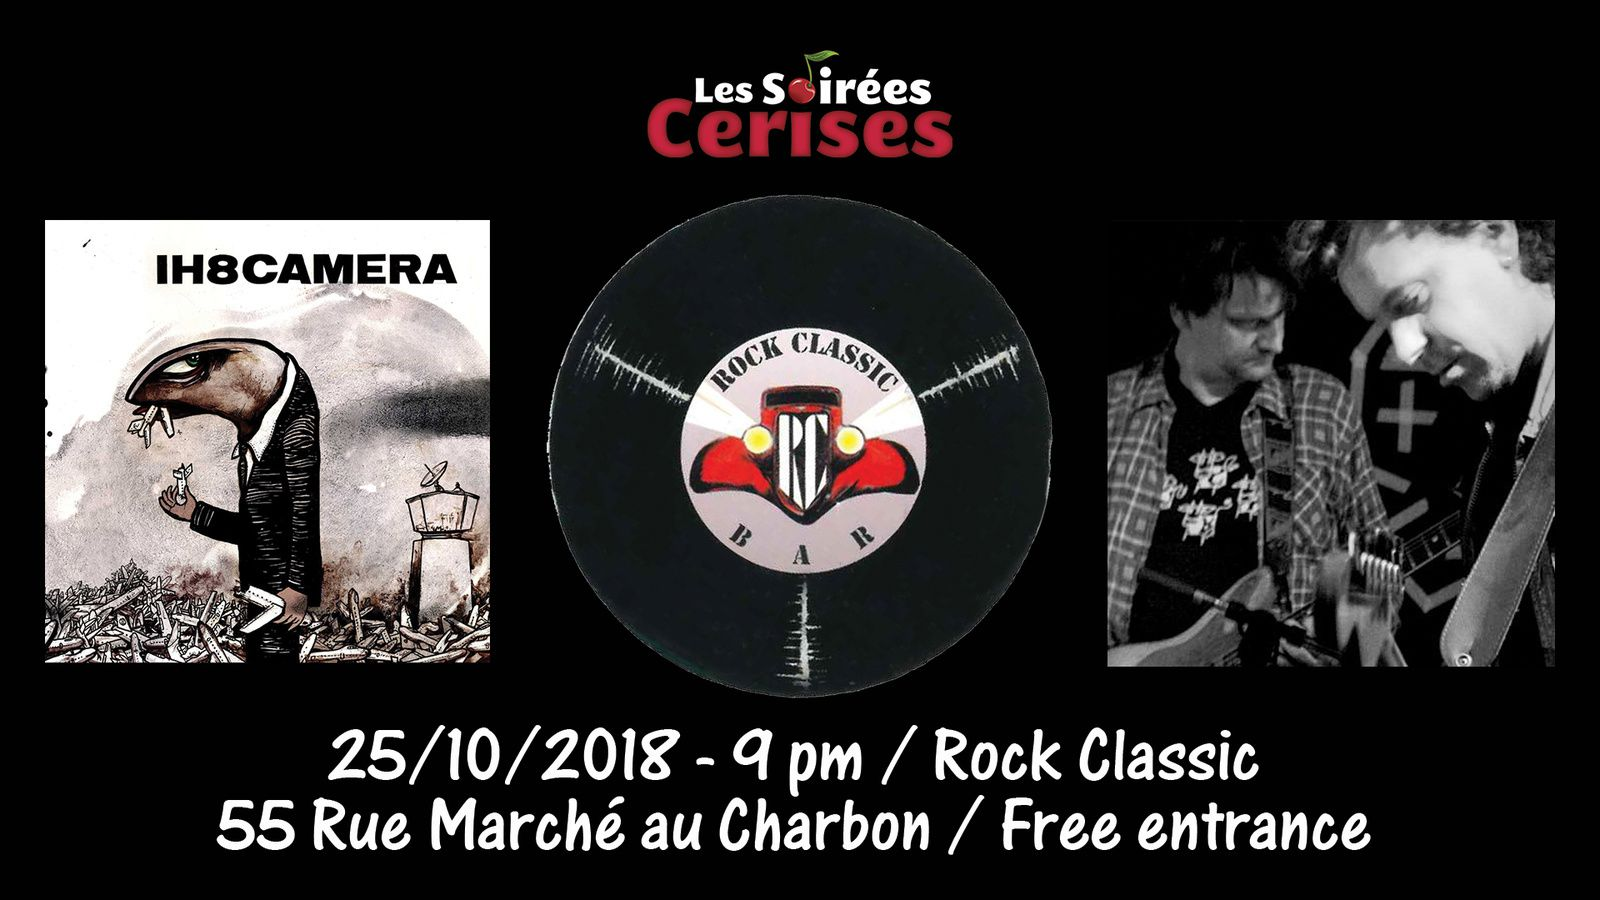 ▶ I H8 Camera @ Rock Classic - 25/10/2018 - 21h00 - Entrée gratuite / Free entrance